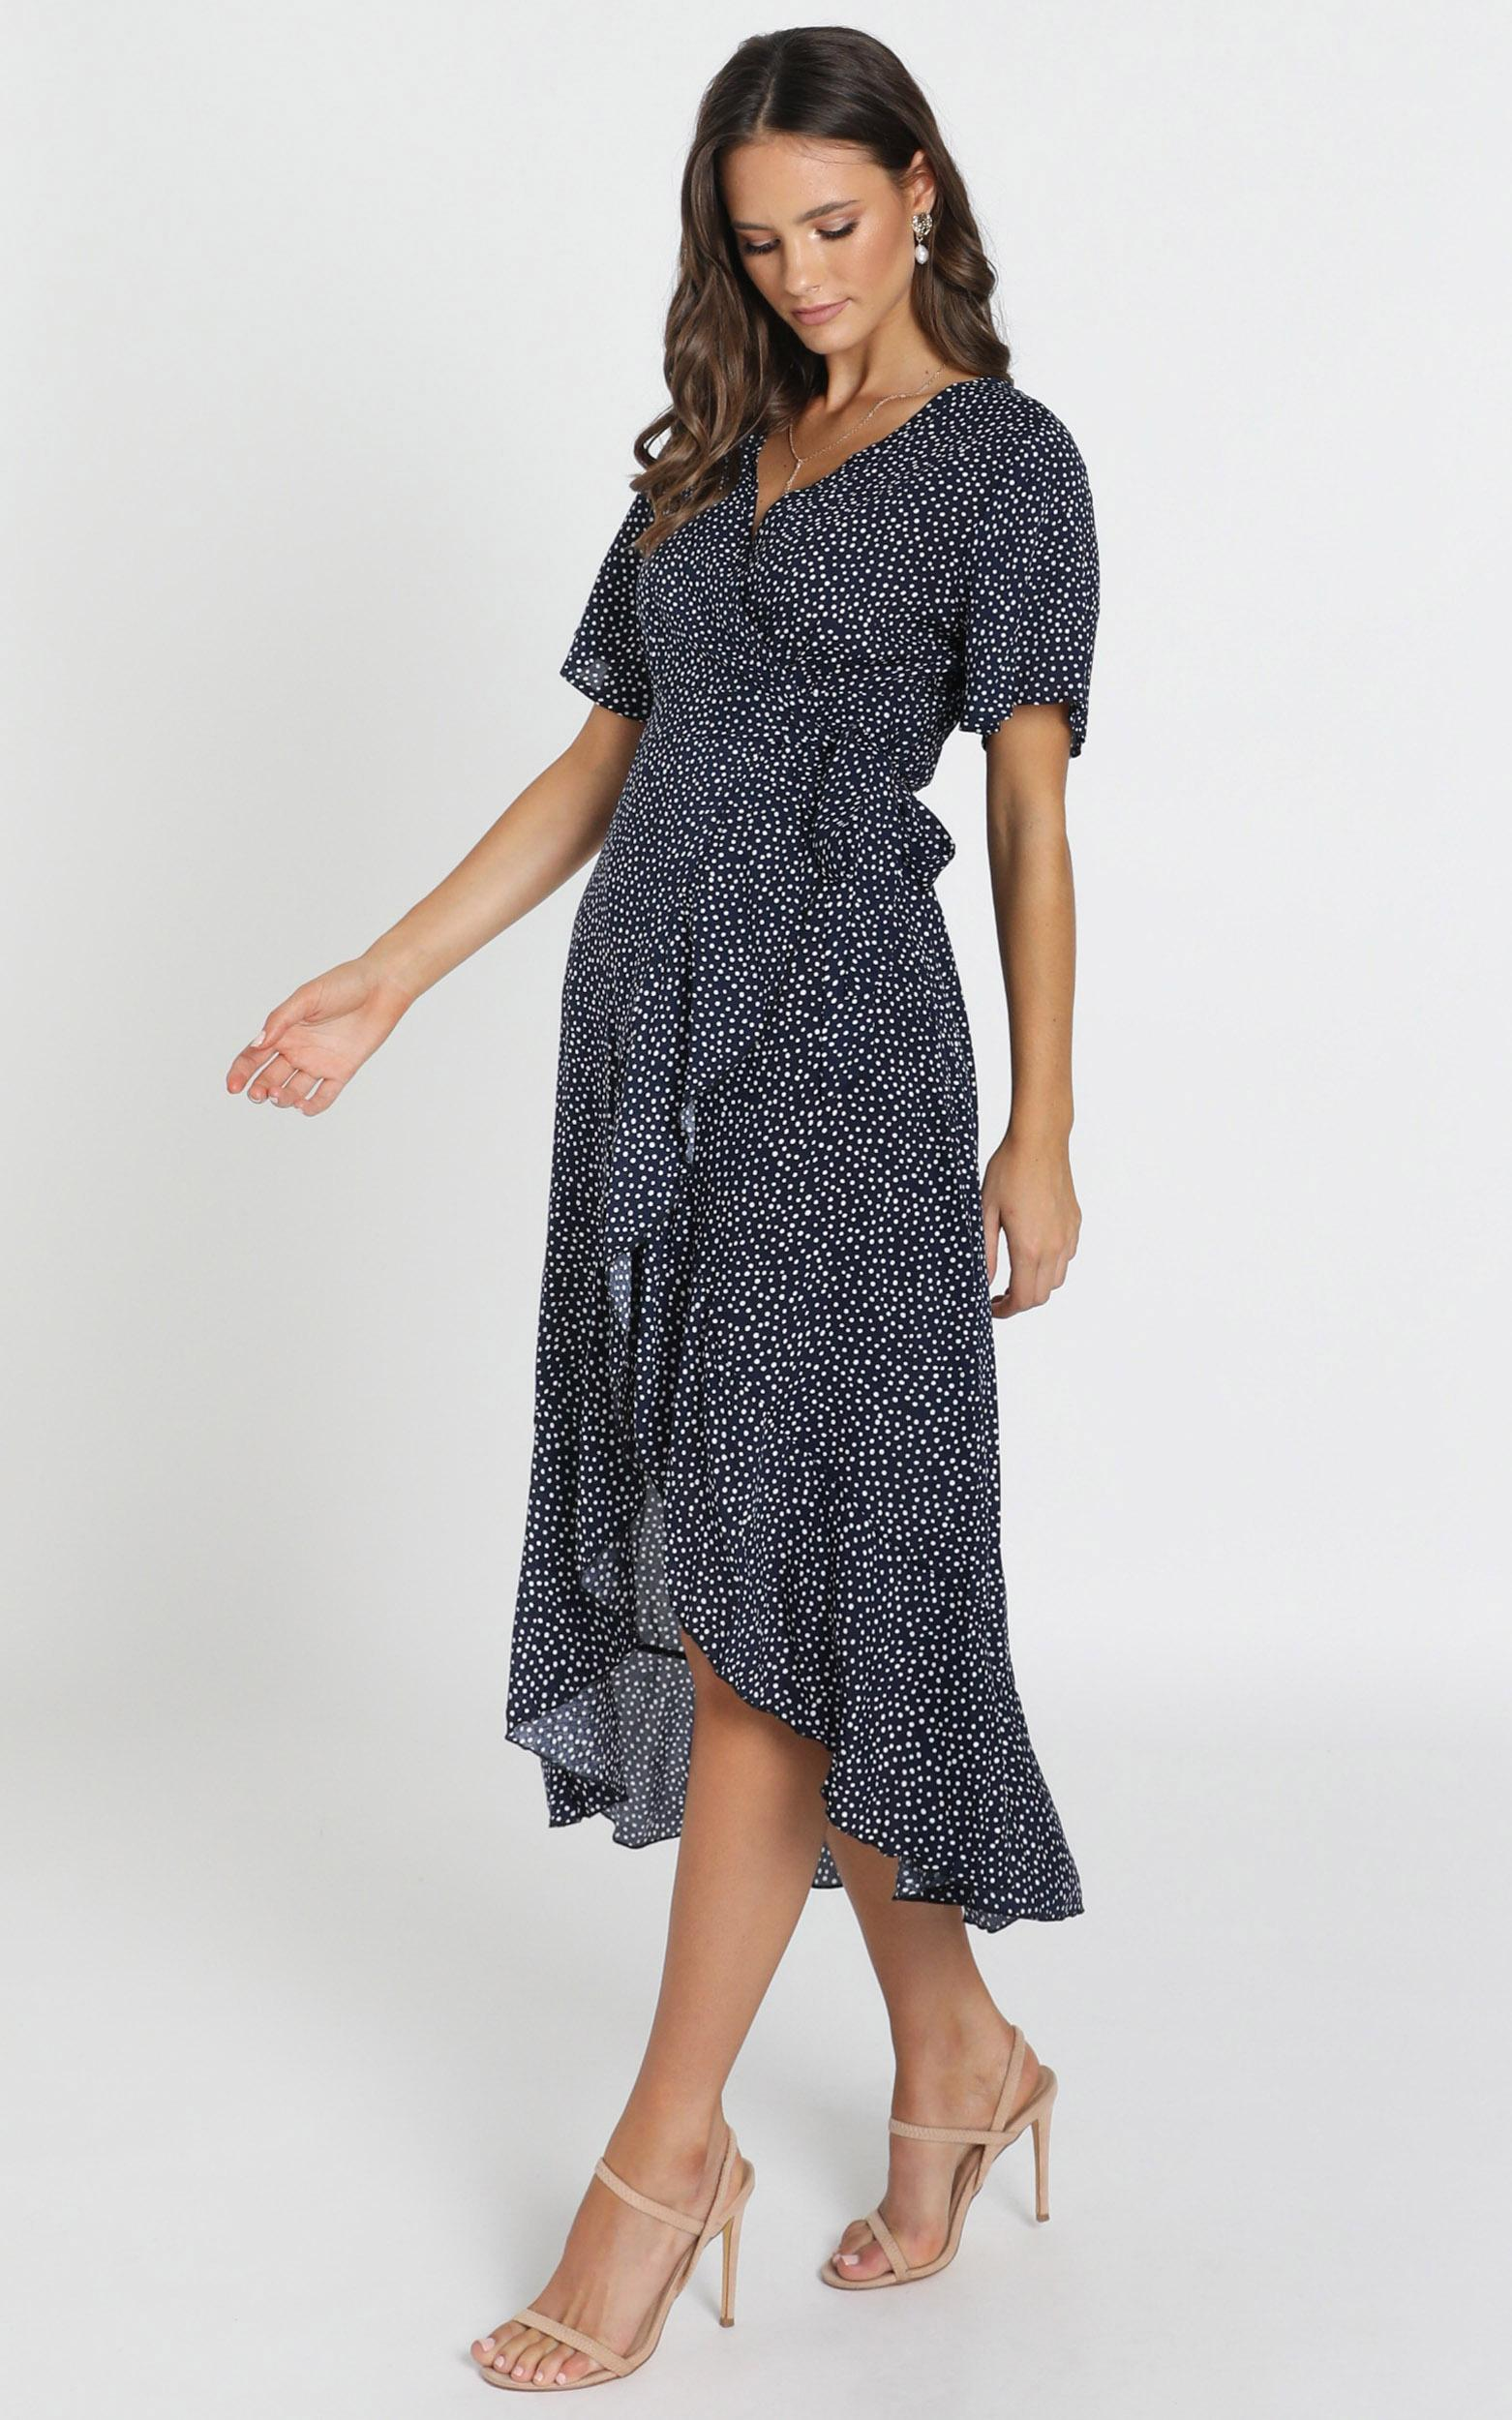 Yelina Wrap Maxi Dress in navy spot - 14 (XL), Navy, hi-res image number null